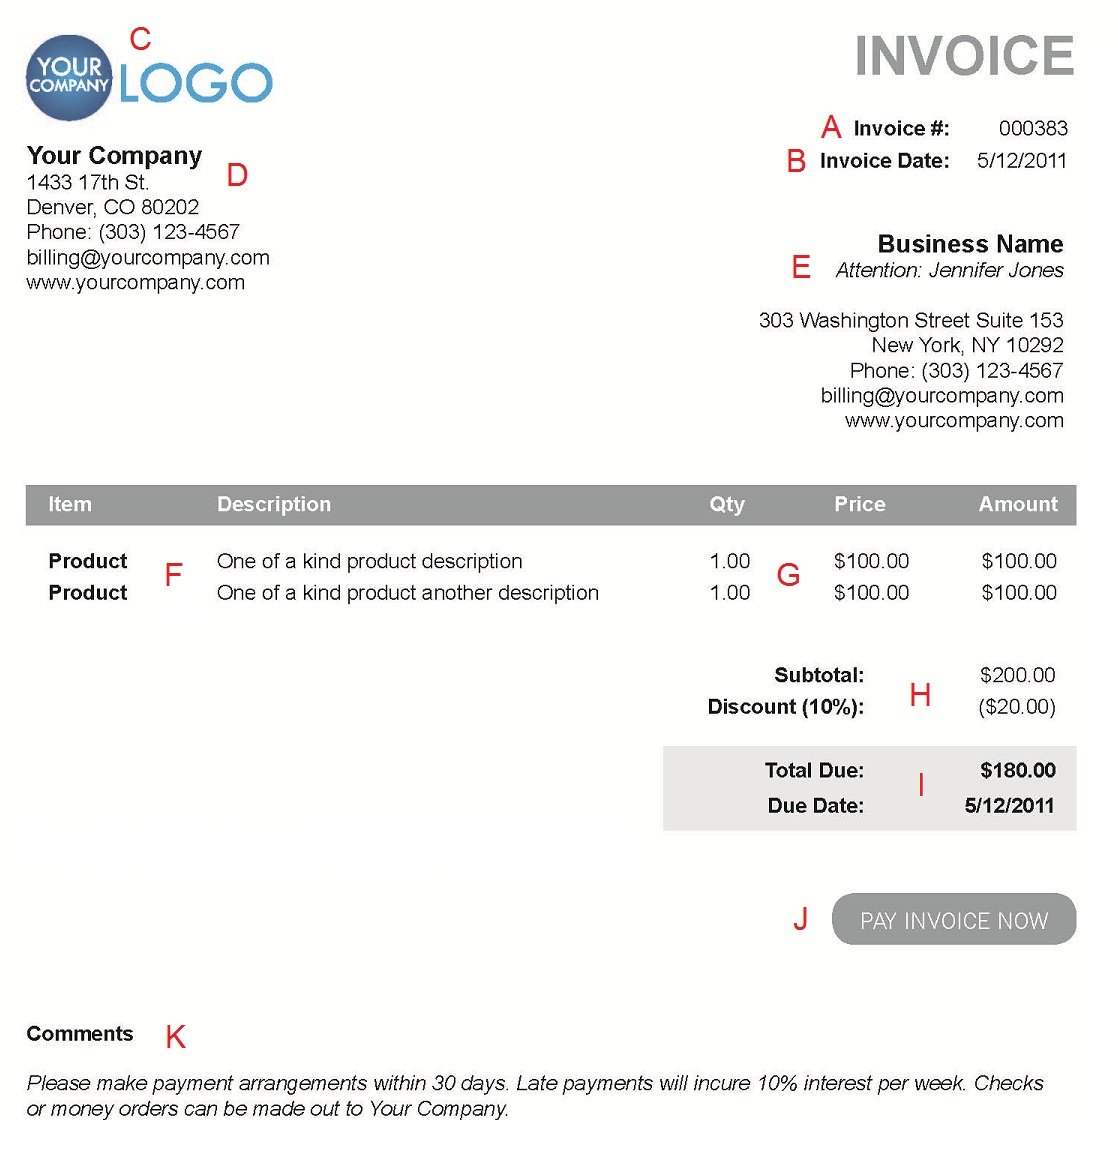 Opposenewapstandardsus  Winsome The  Different Sections Of An Electronic Payment Invoice With Lovely A  With Alluring Us Invoice Template Also Invoice Samples Free In Addition Invoice For Website And Late Payment Of Invoices As Well As Builder Invoice Template Additionally Ato Tax Invoice Requirements From Paysimplecom With Opposenewapstandardsus  Lovely The  Different Sections Of An Electronic Payment Invoice With Alluring A  And Winsome Us Invoice Template Also Invoice Samples Free In Addition Invoice For Website From Paysimplecom